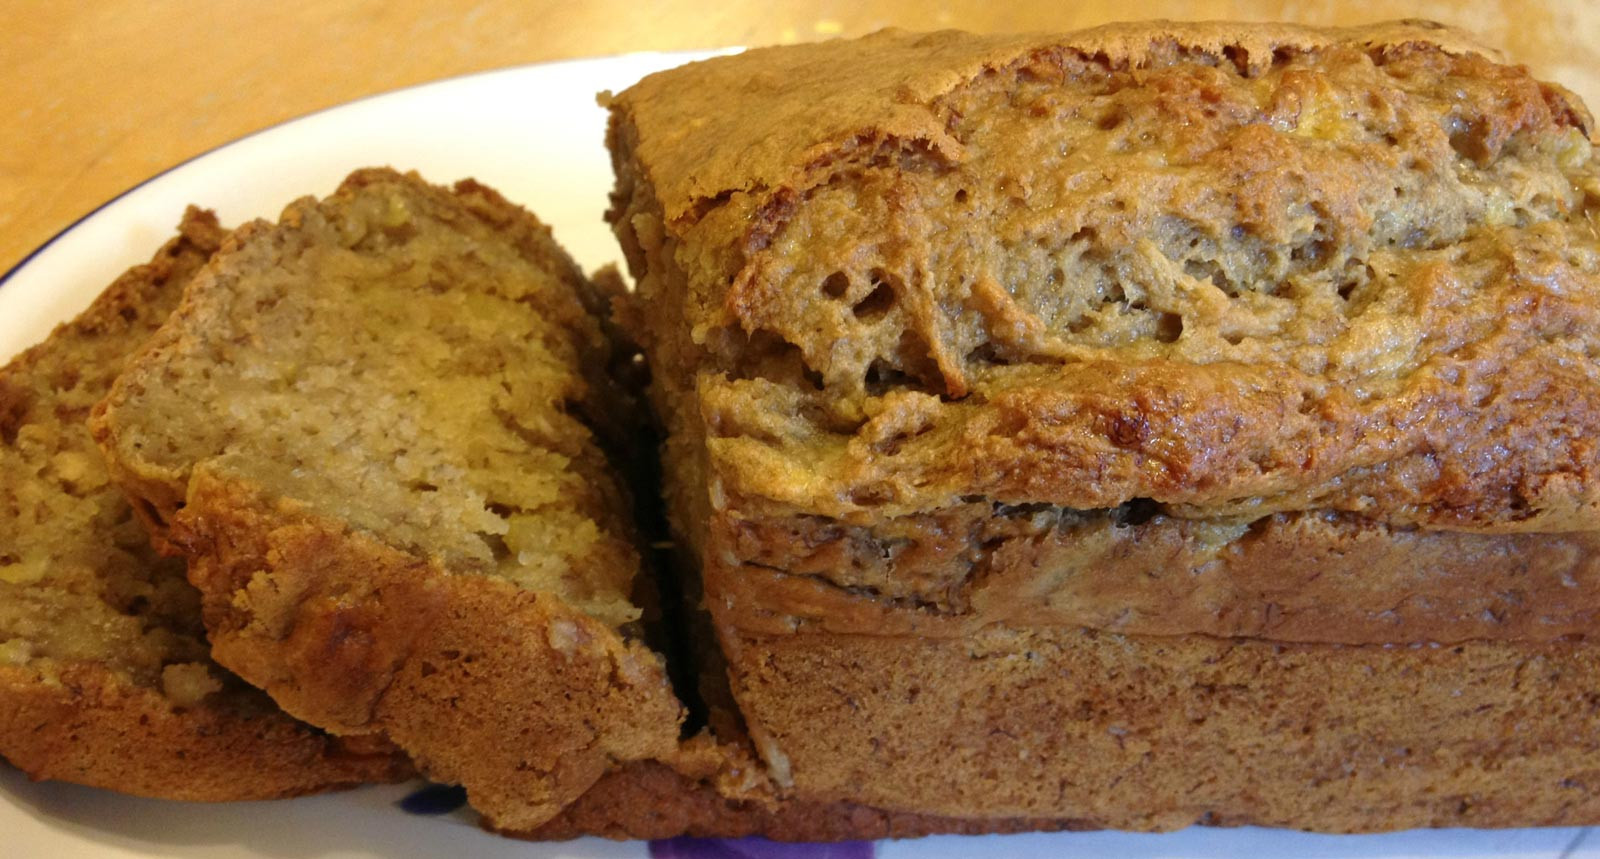 Best Healthy Banana Bread  PHOTOS 20 Bread Flavours You Can Make At Home [RECIPES